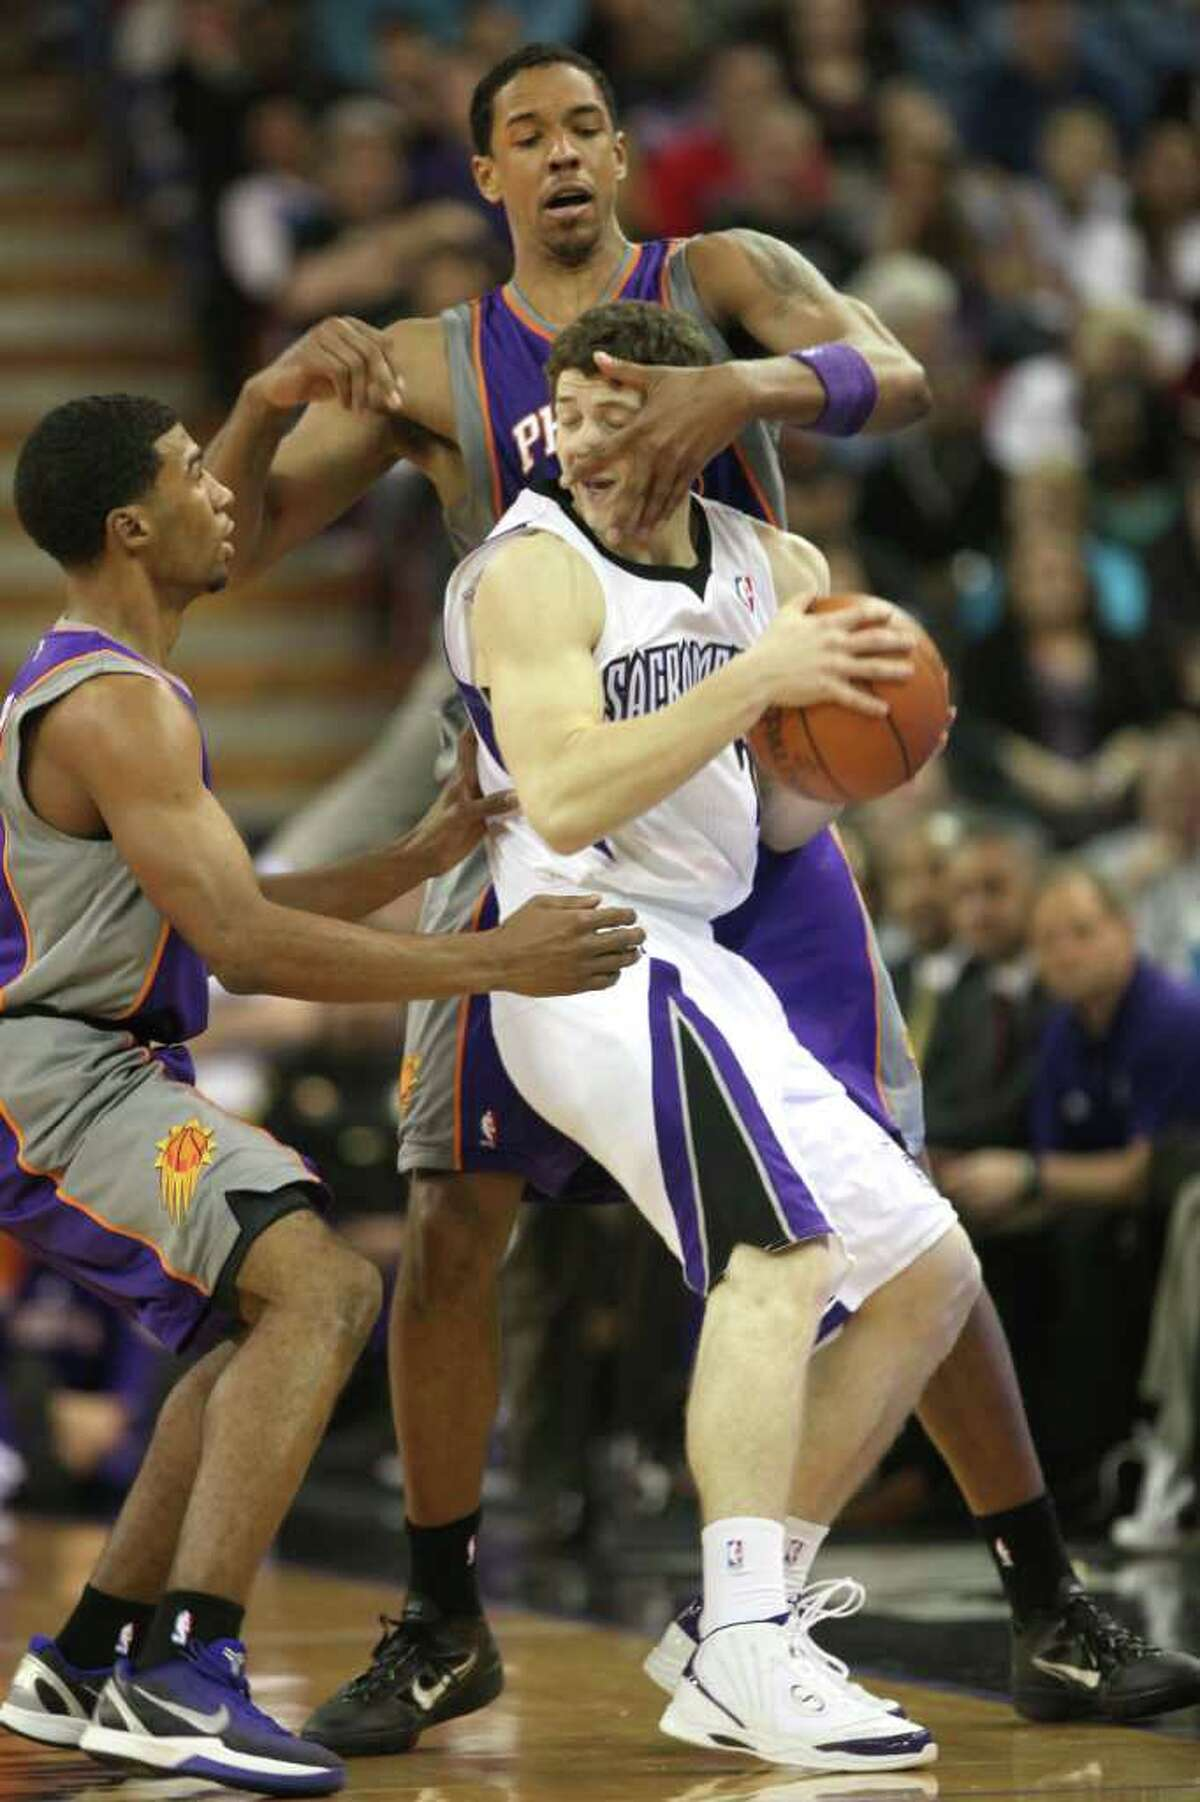 Sacramento Kings guard Jimmer Fredette, center, is double-teamed by Phoenix Suns Ronnie Price, left, and Channing Frye during the third quarter of an NBA basketball game in Sacramento, Calif., Saturday, Feb. 11, 2012. The Suns won 98-84.